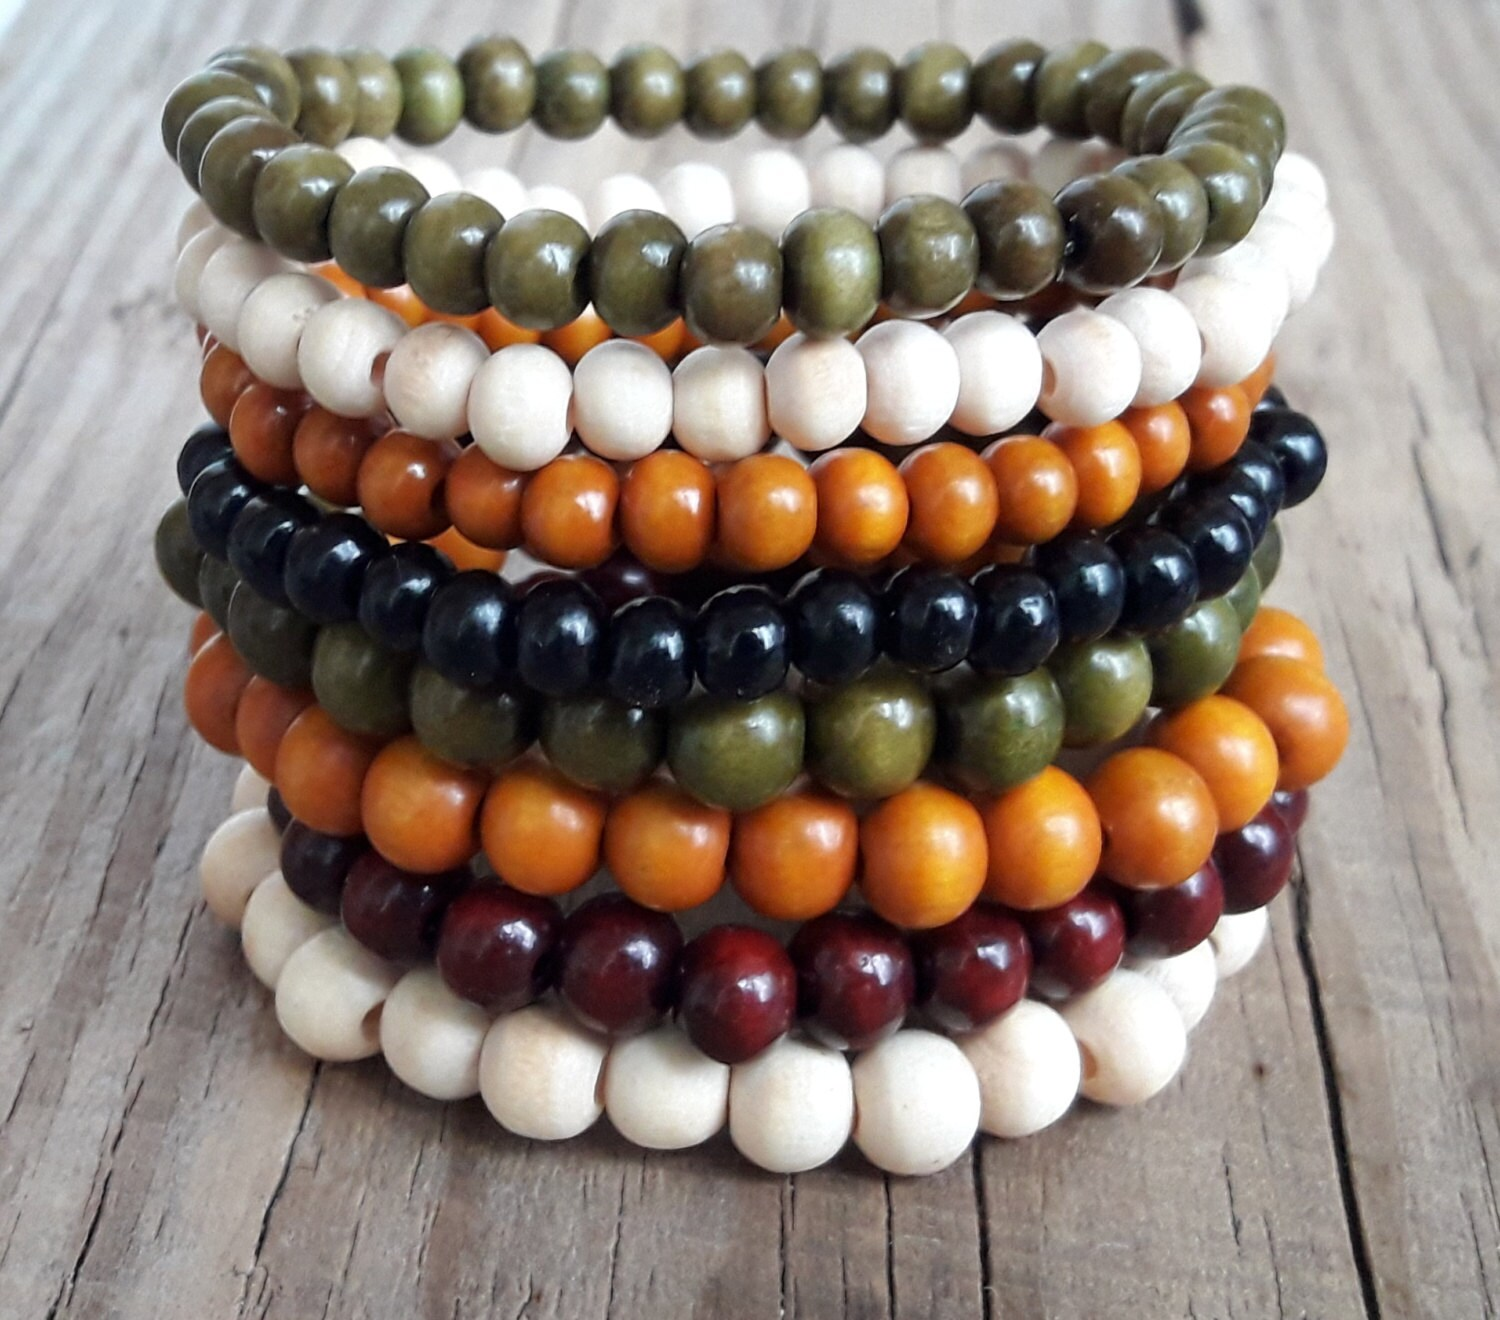 stockist bead black wooden maria bracelet sydney at poepke australia rosa products